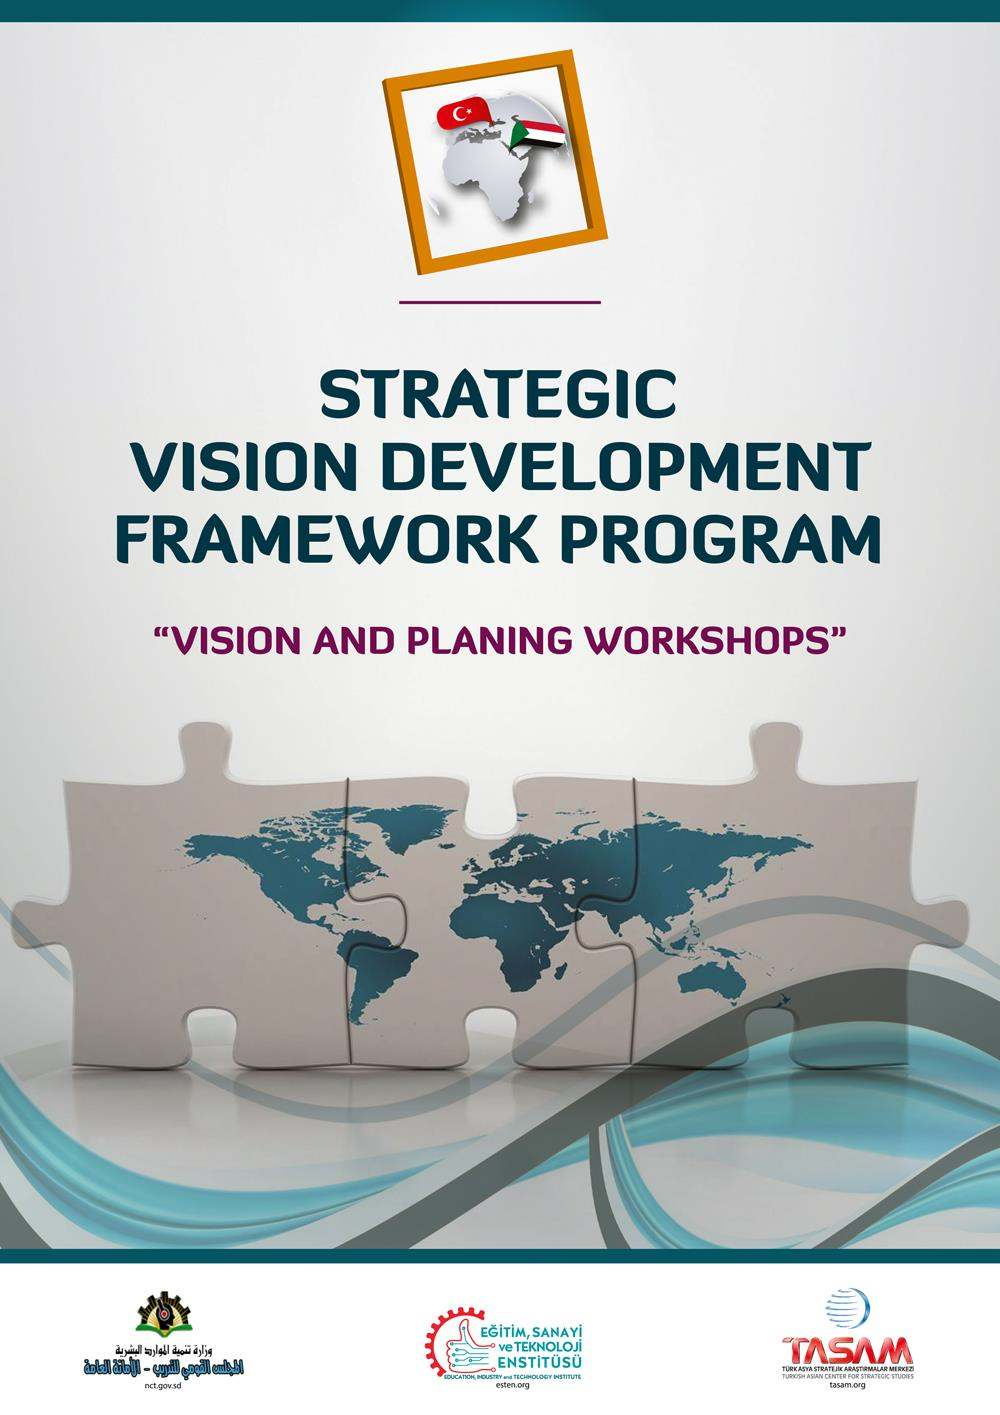 Strategic Vision Development Pramework Program | Vision and Planing Workshops